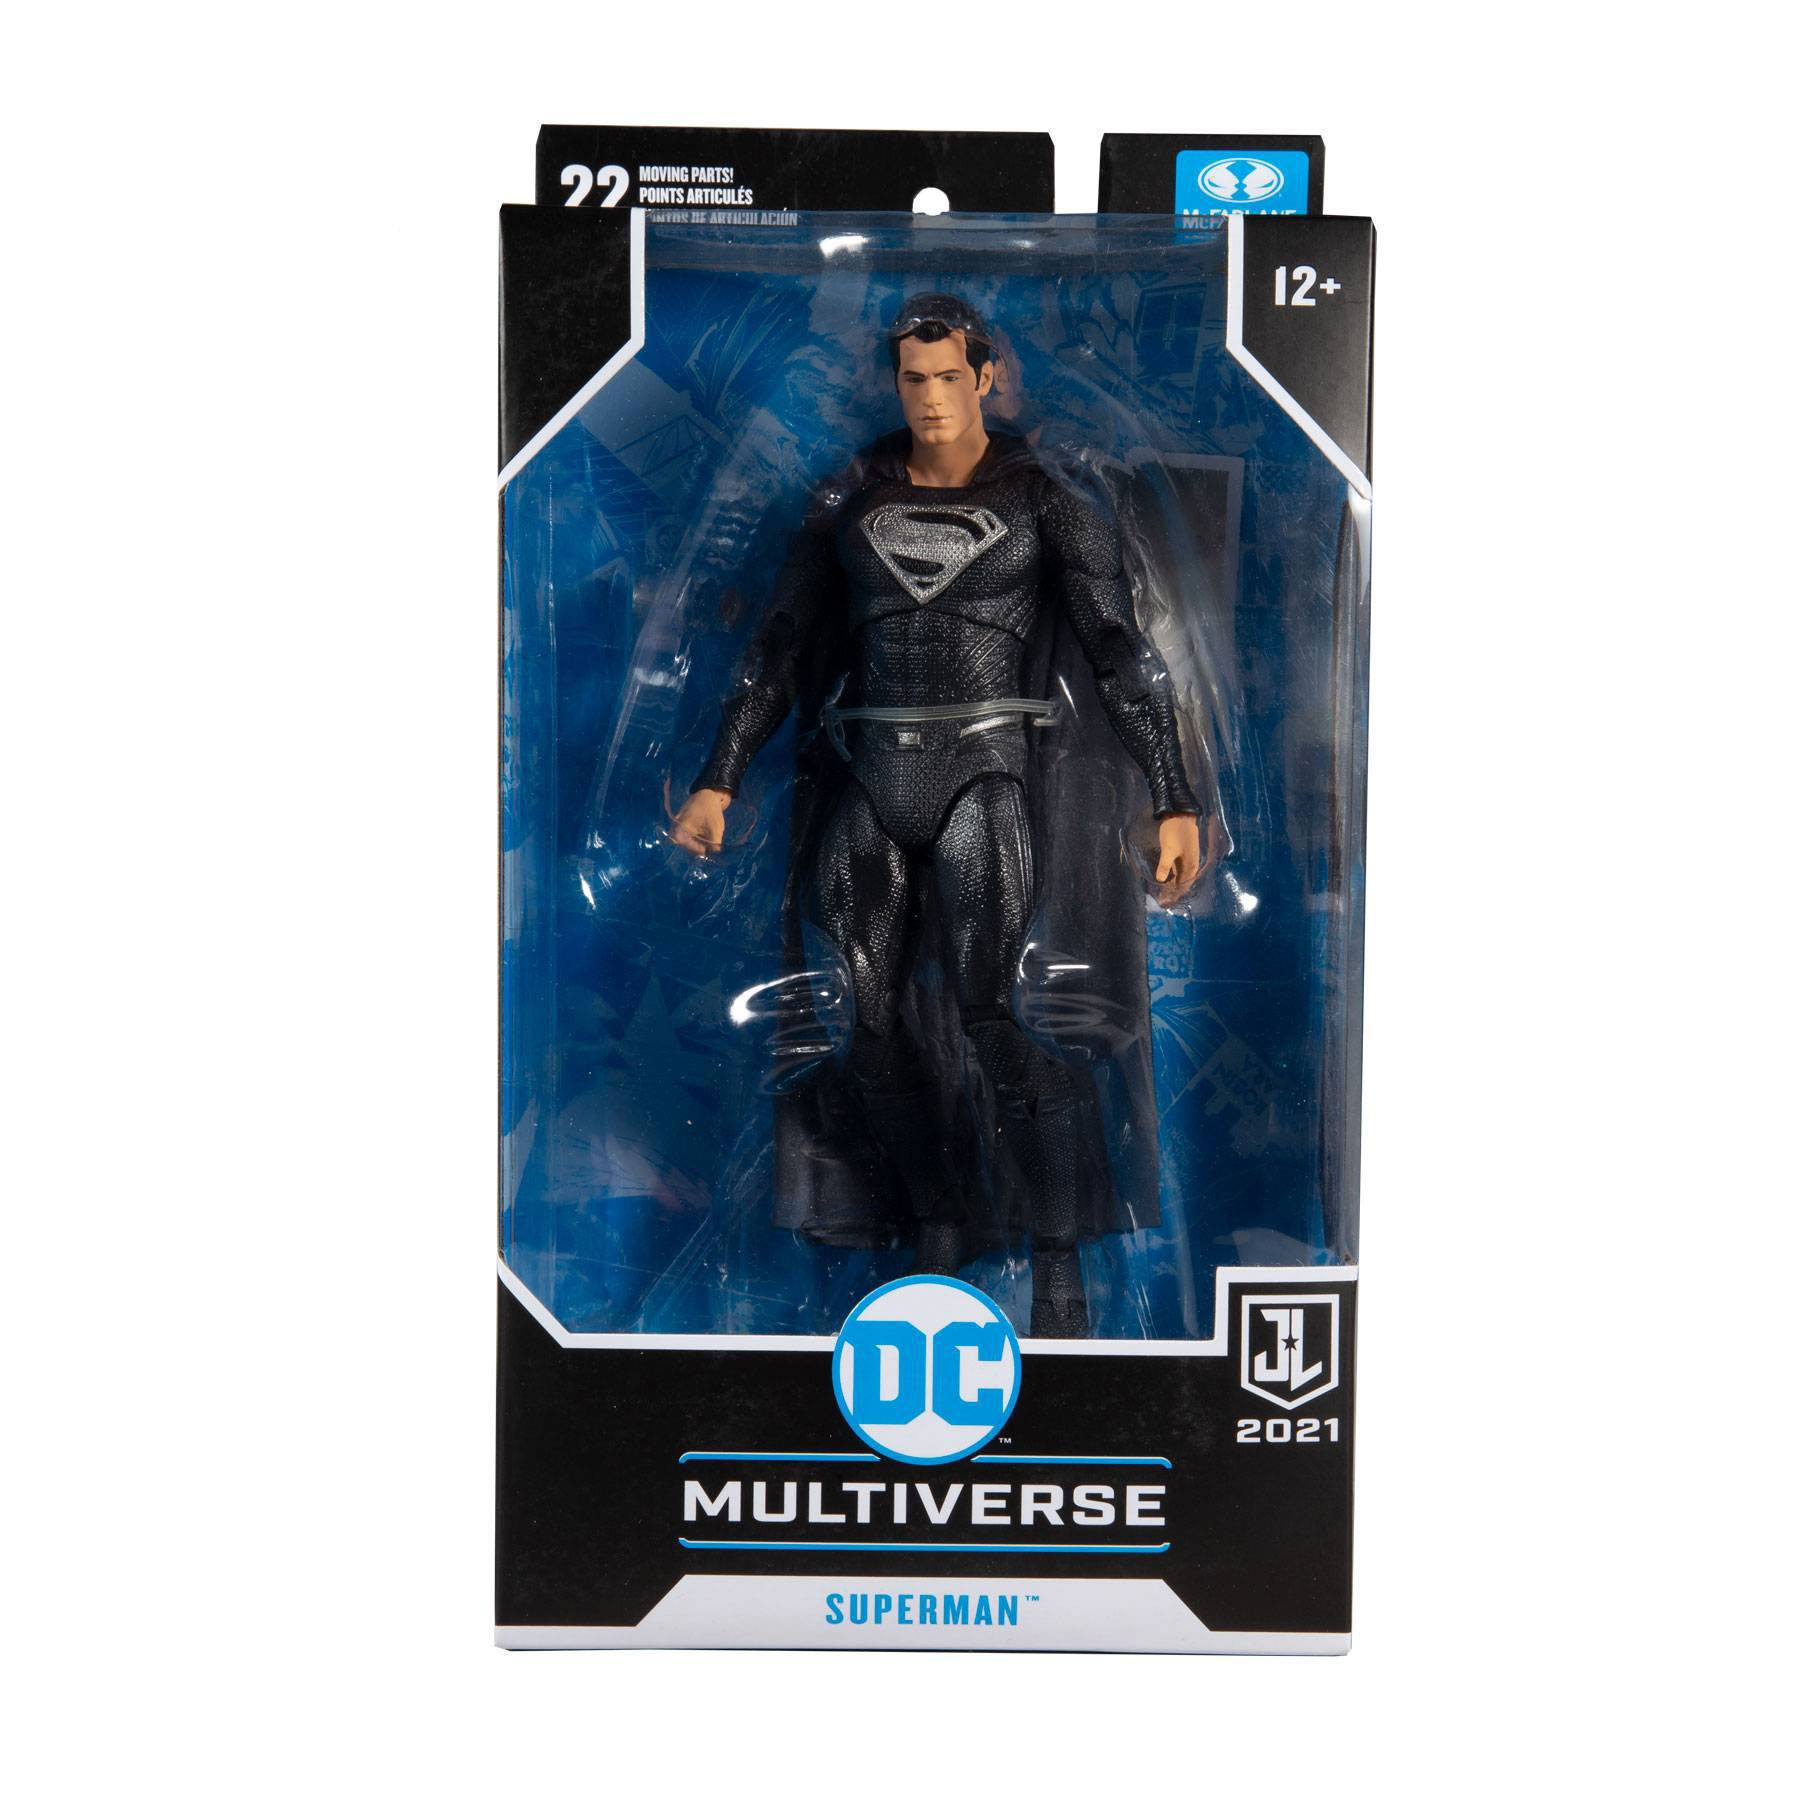 DC Justice League Movie Actionfigur Superman 18 cm MCF15095-7 787926150957